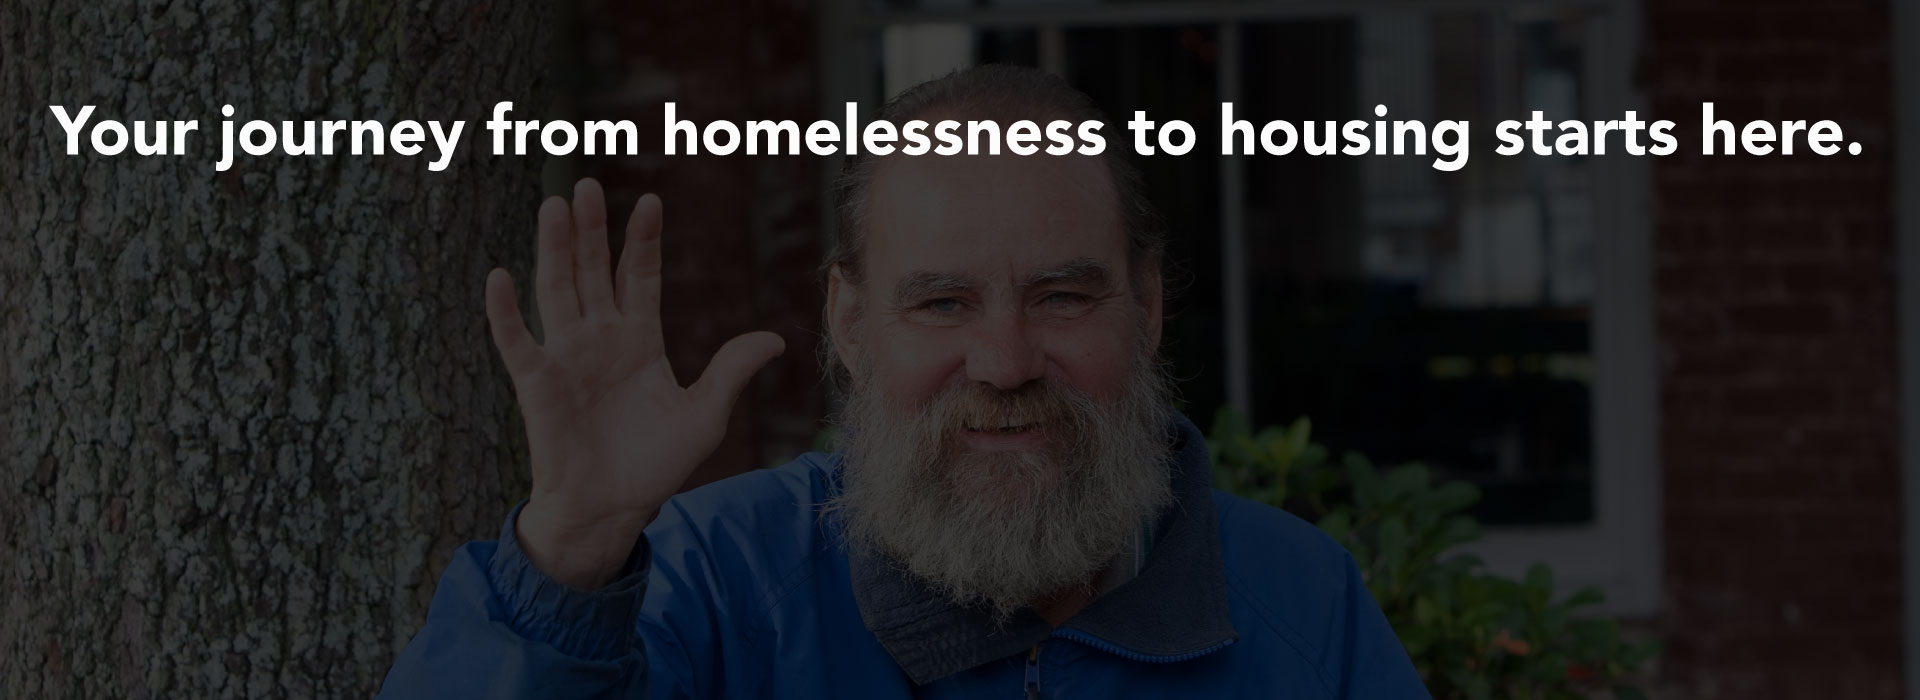 lowell transitional living center services that end homelessness